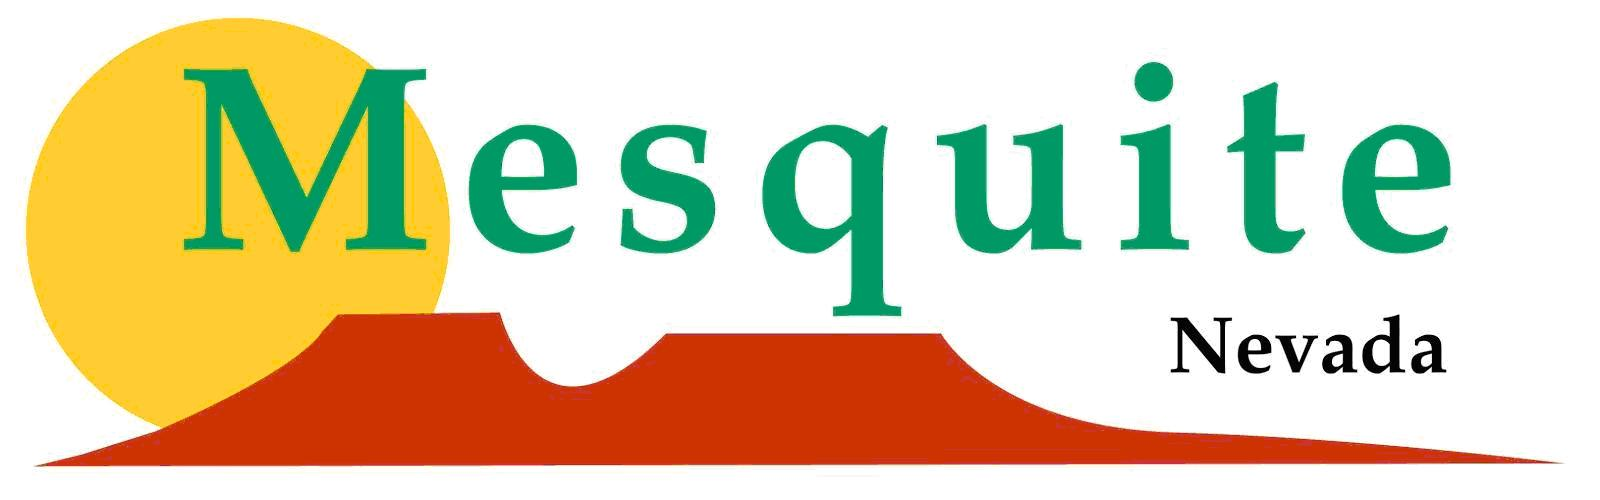 News from the City of Mesquite, Feb. 12, 2015